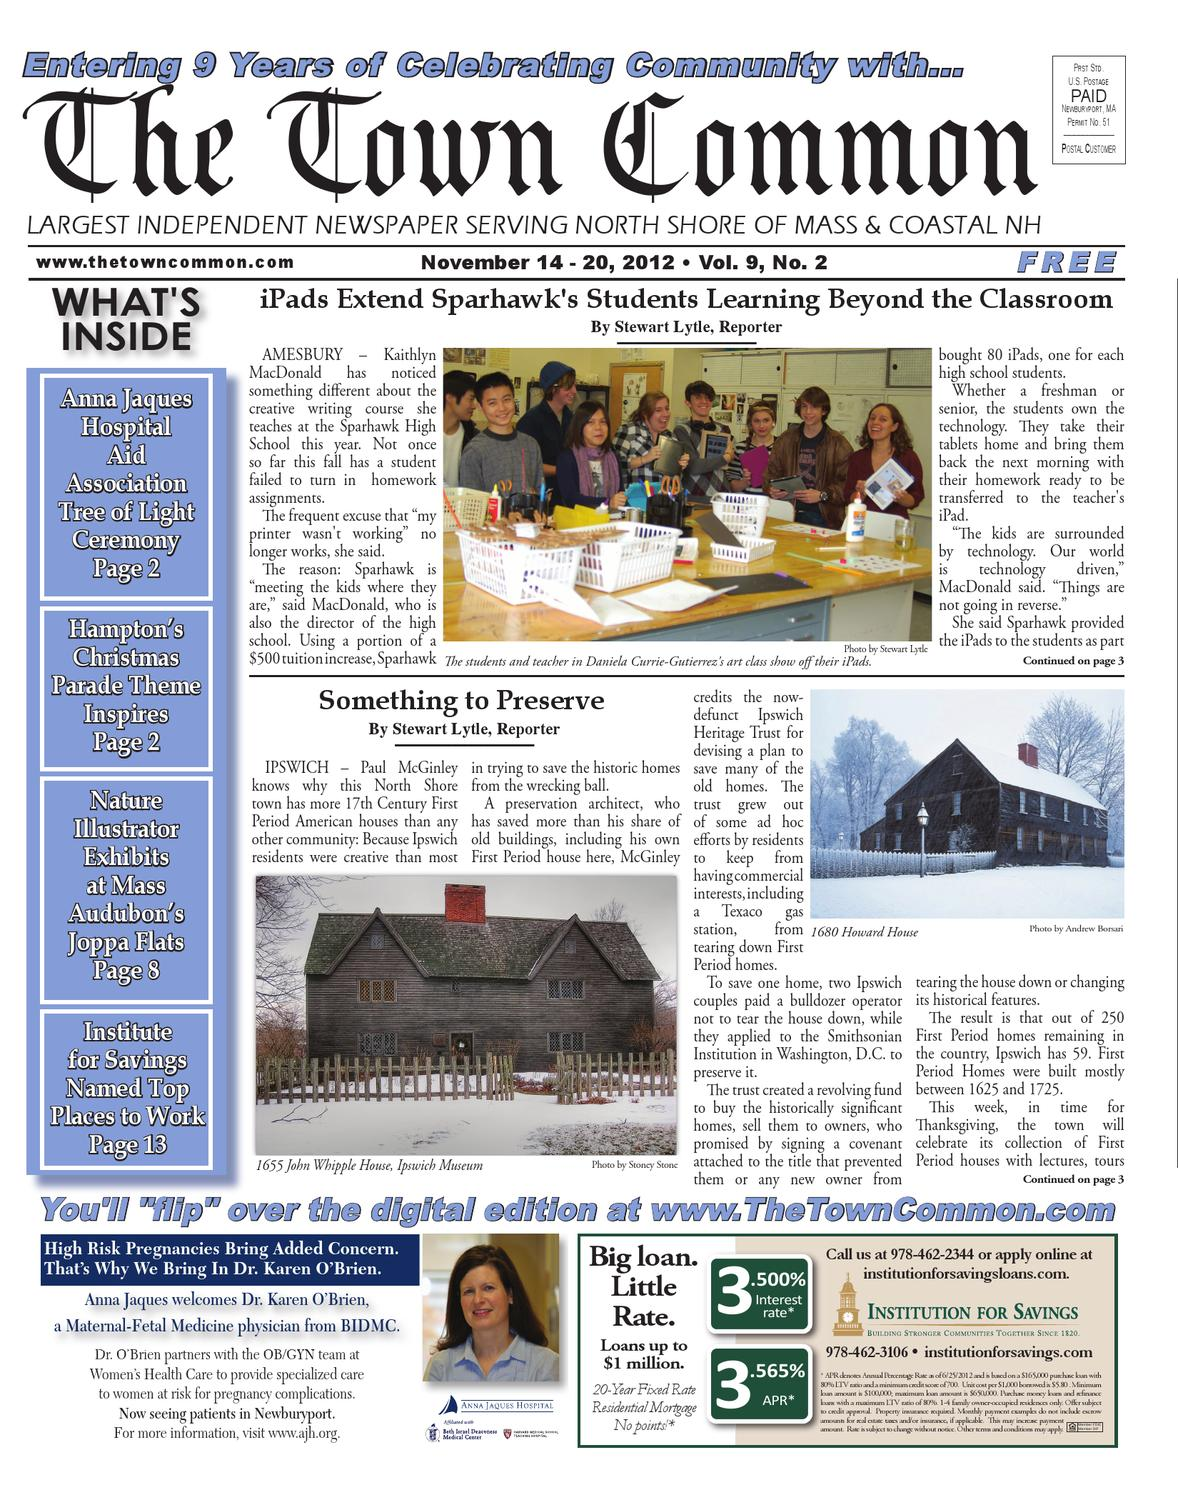 North Andover Pac Presents Come And Ask >> Ttc 11 14 12 Vol 9 No 2 P1 20 Ver1 Pdf By The Town Common Issuu